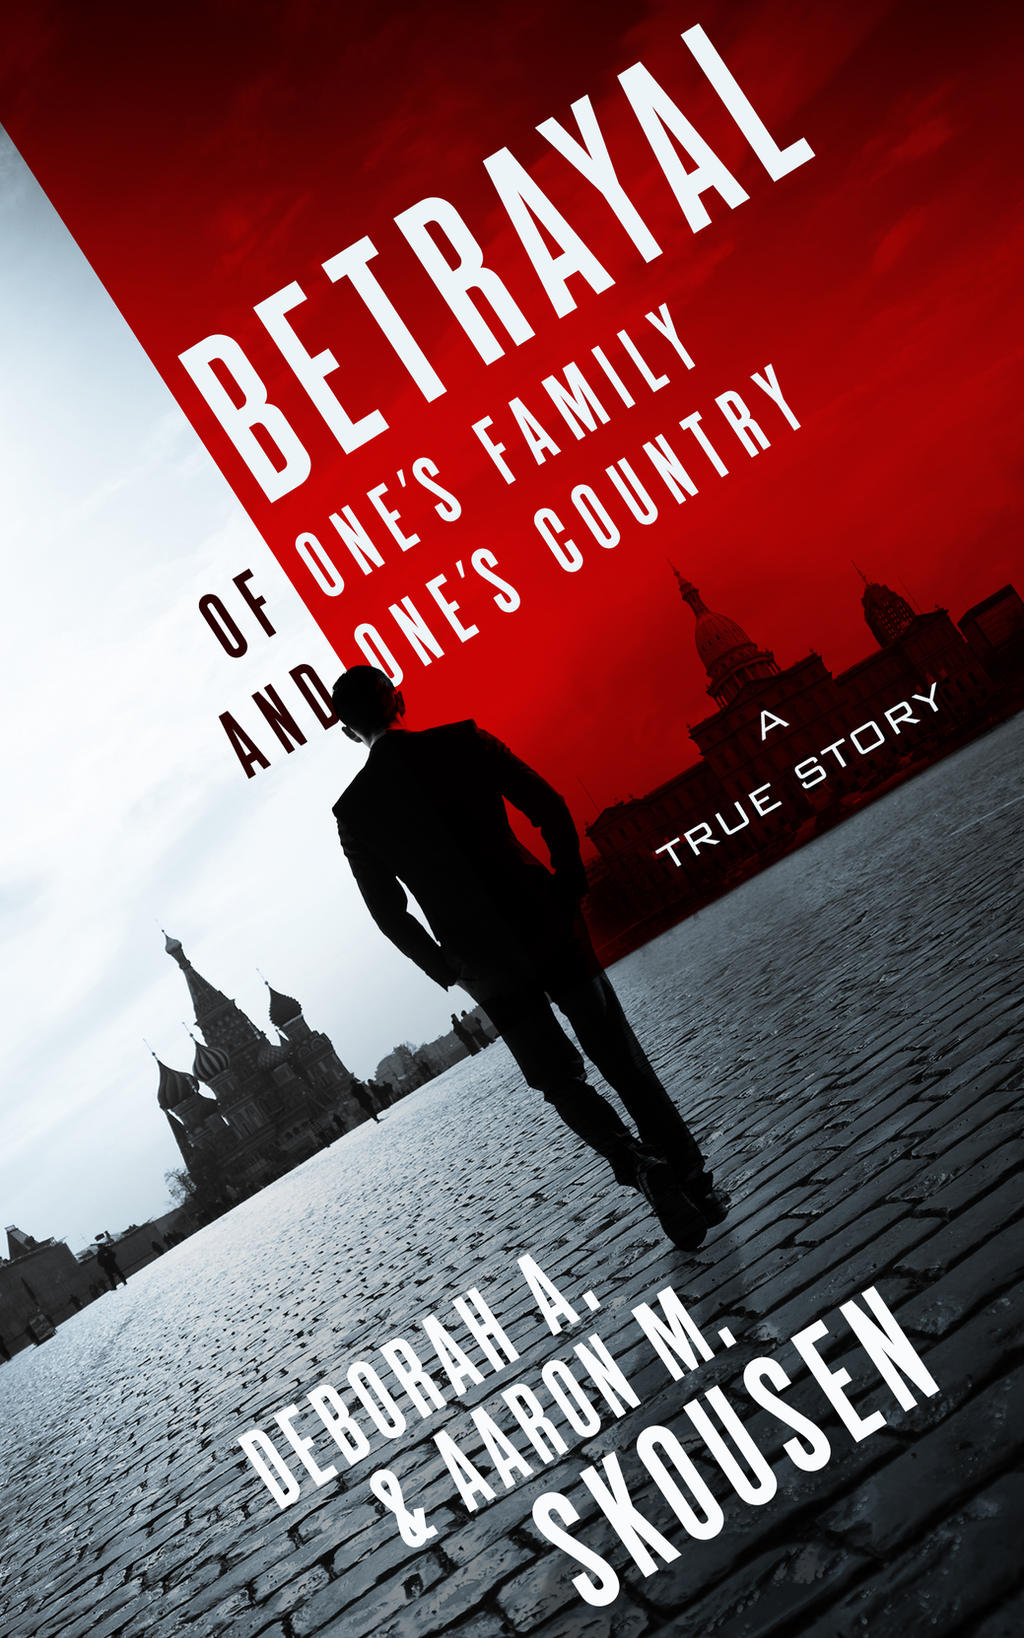 Cool Book Cover Art : Book cover design for betrayal of ones family by